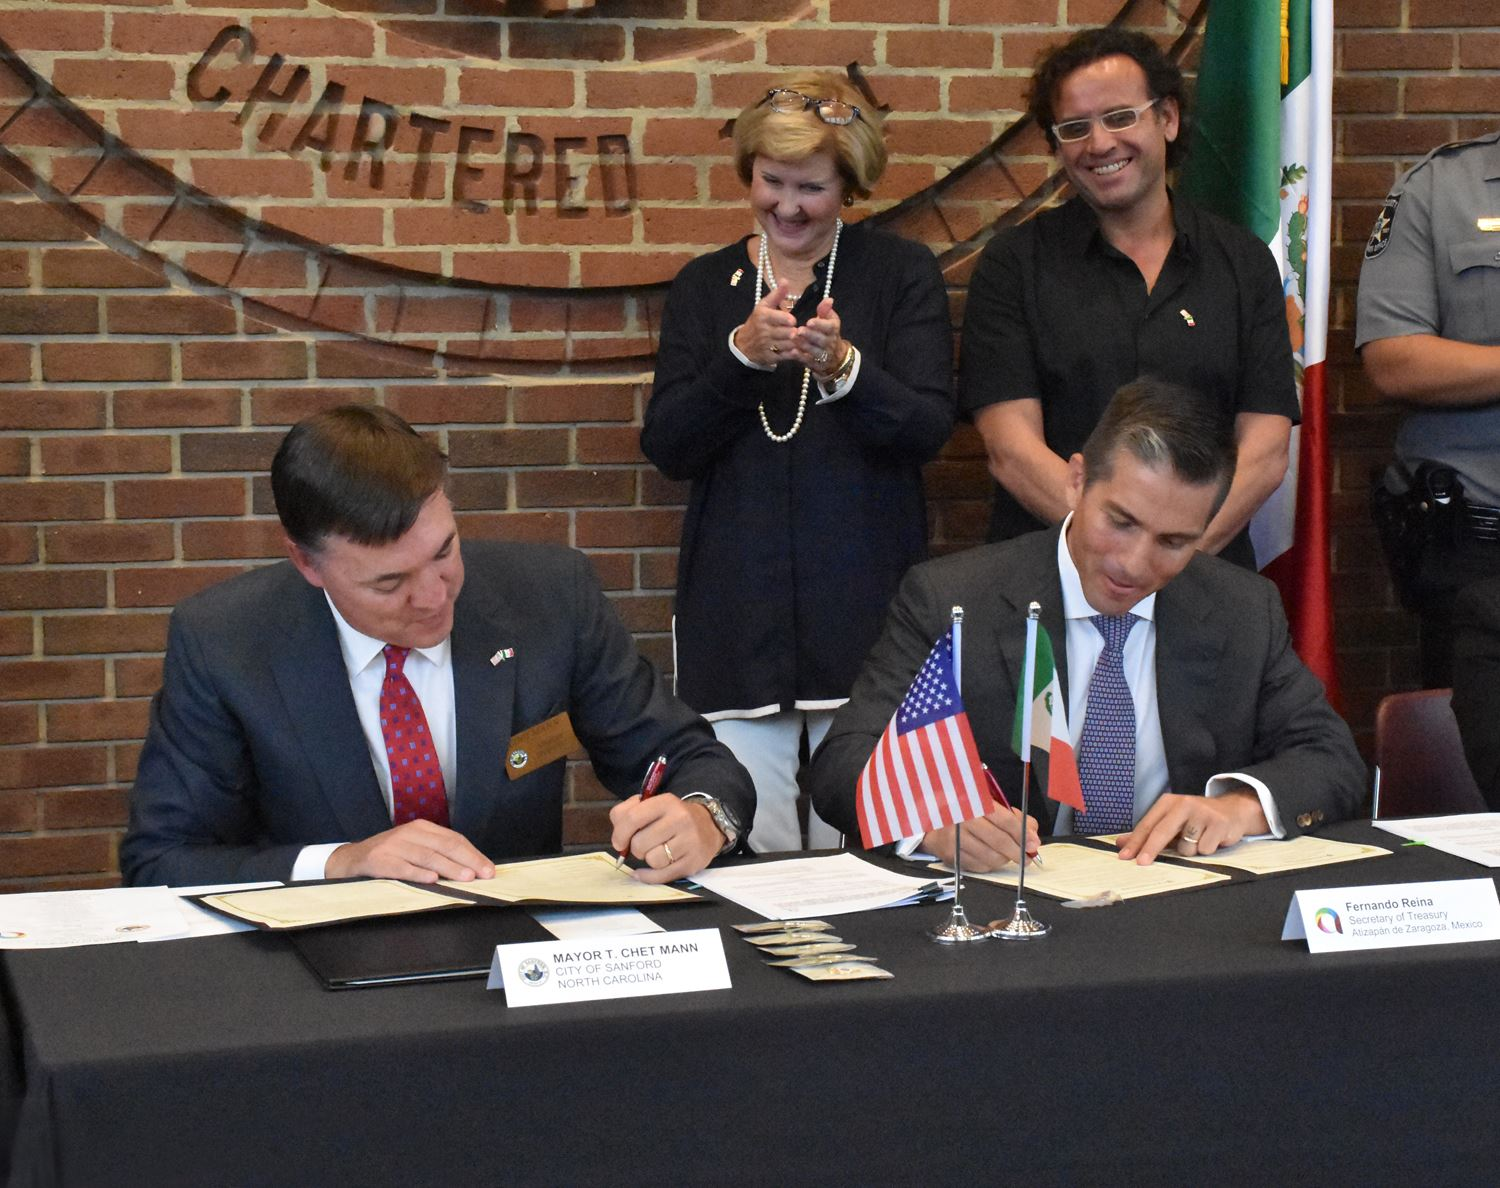 Sister City Signing